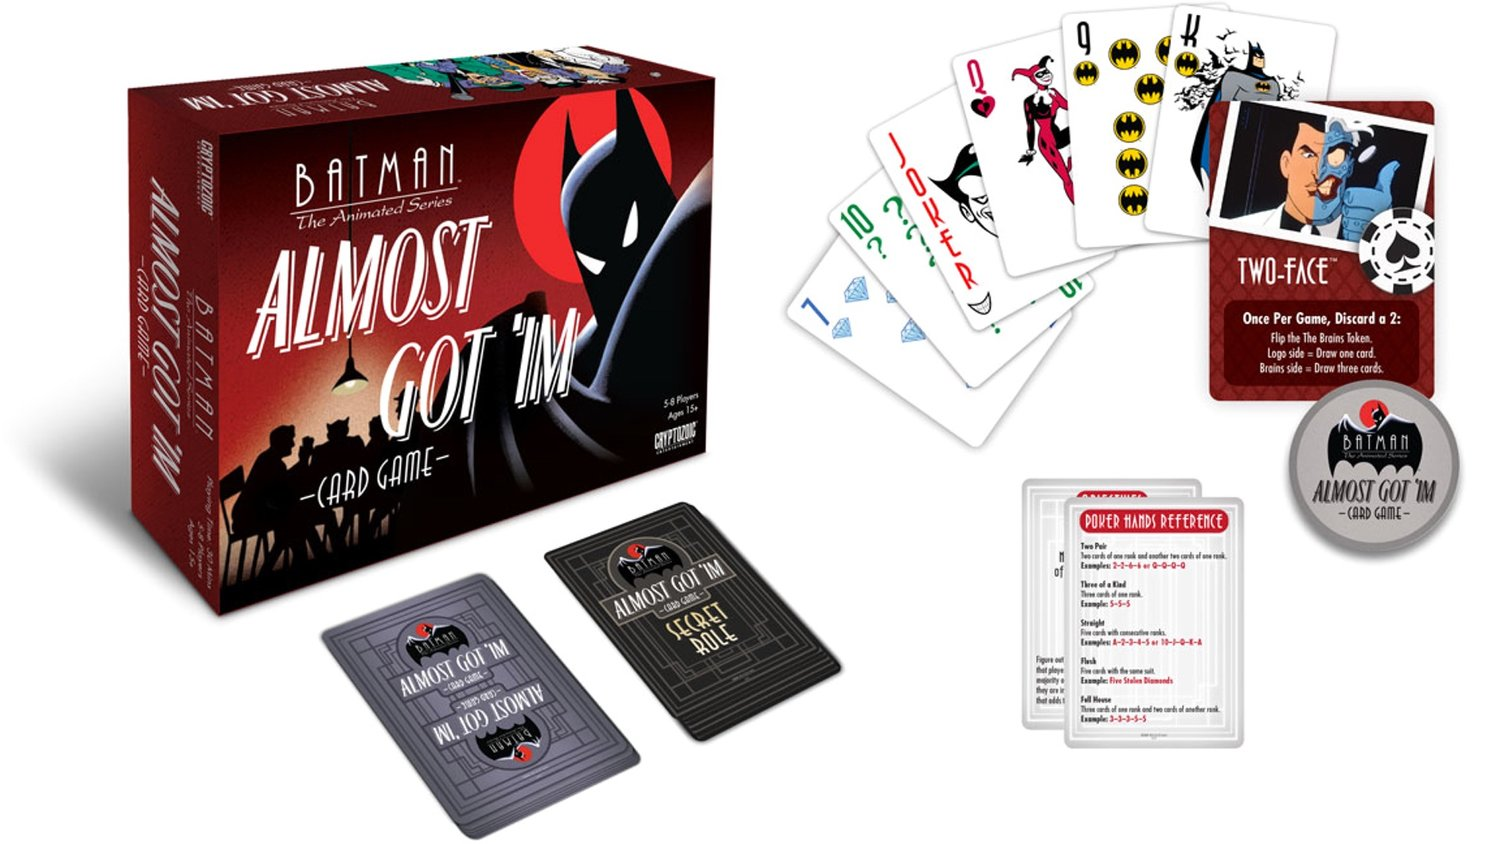 BATMAN: THE ANIMATED SERIES Is Getting Its Own Card Game Based on the Episode